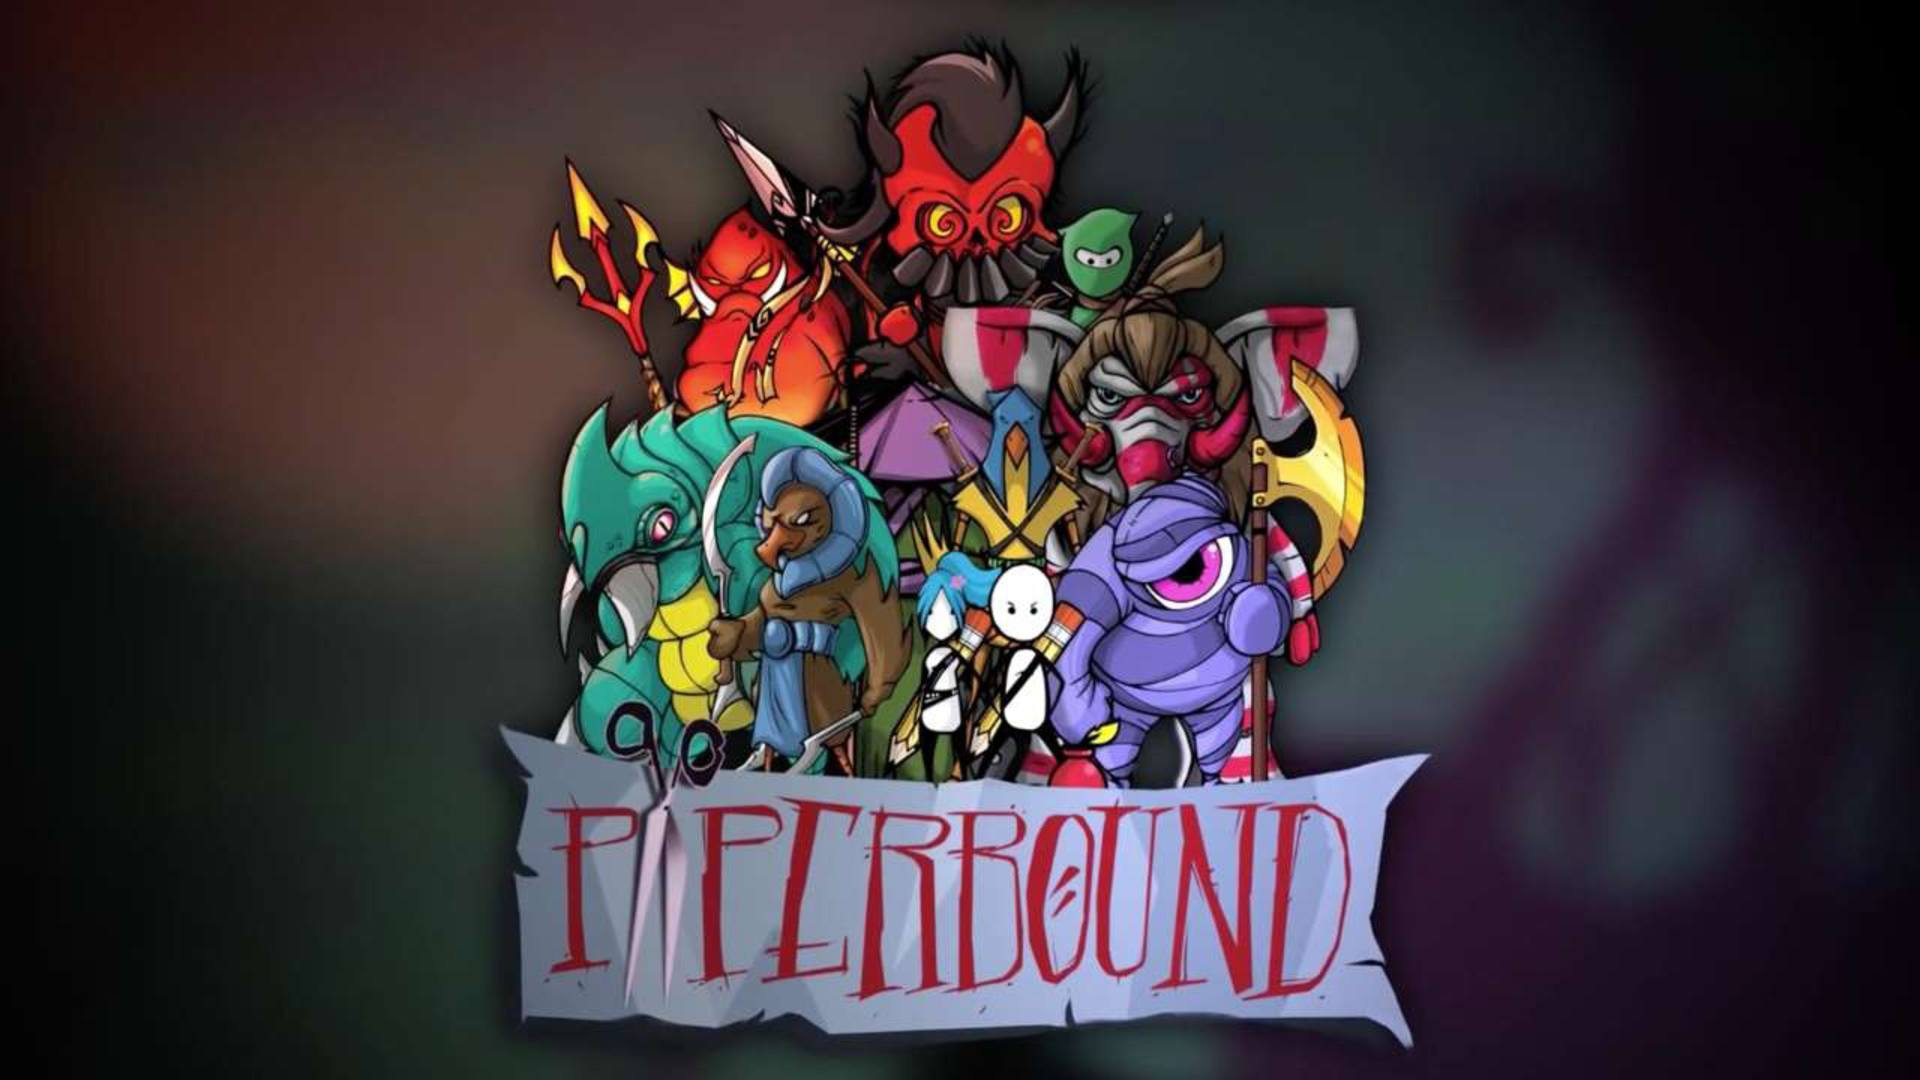 Paperbound Video